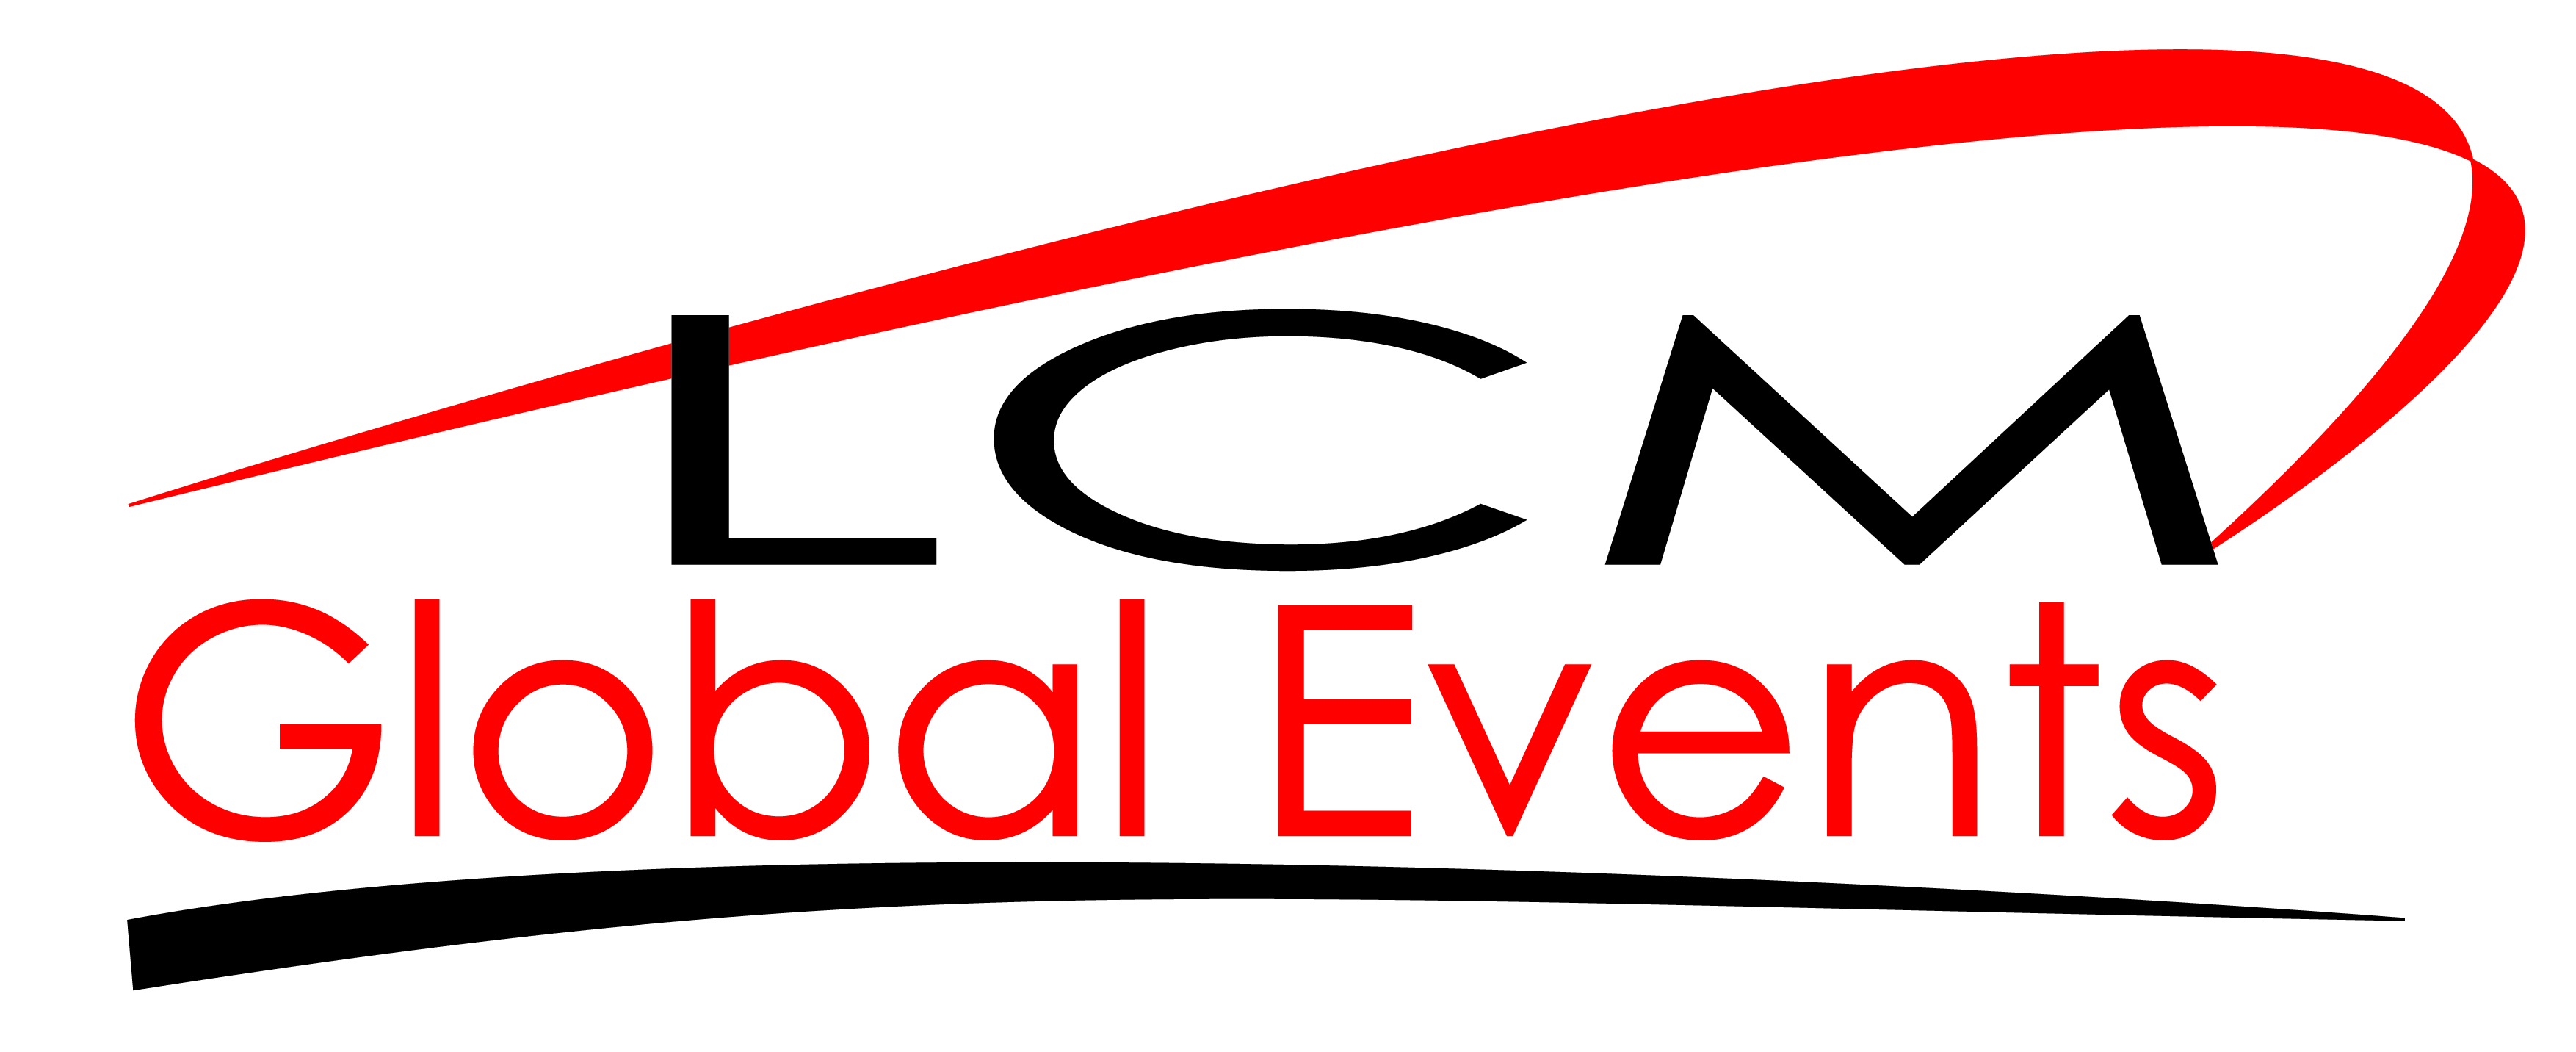 LCM Global Events es una de las empresas que incorpora a Travel Advisors